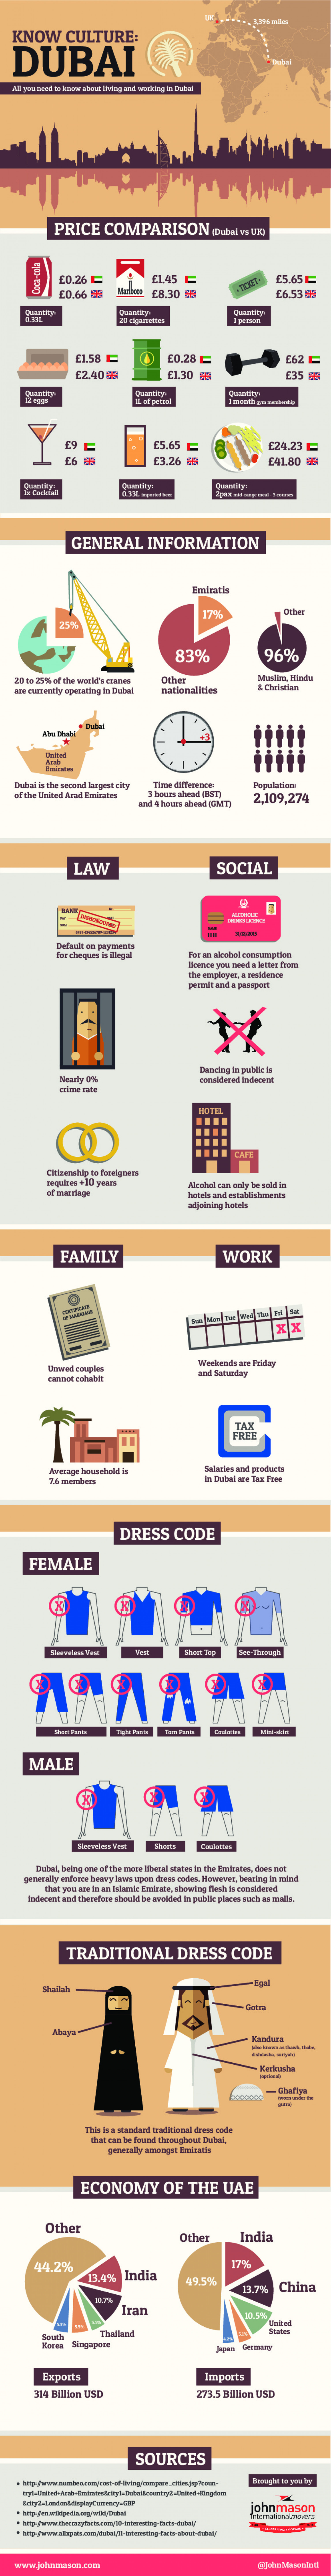 Know Culture: Dubai Infographic